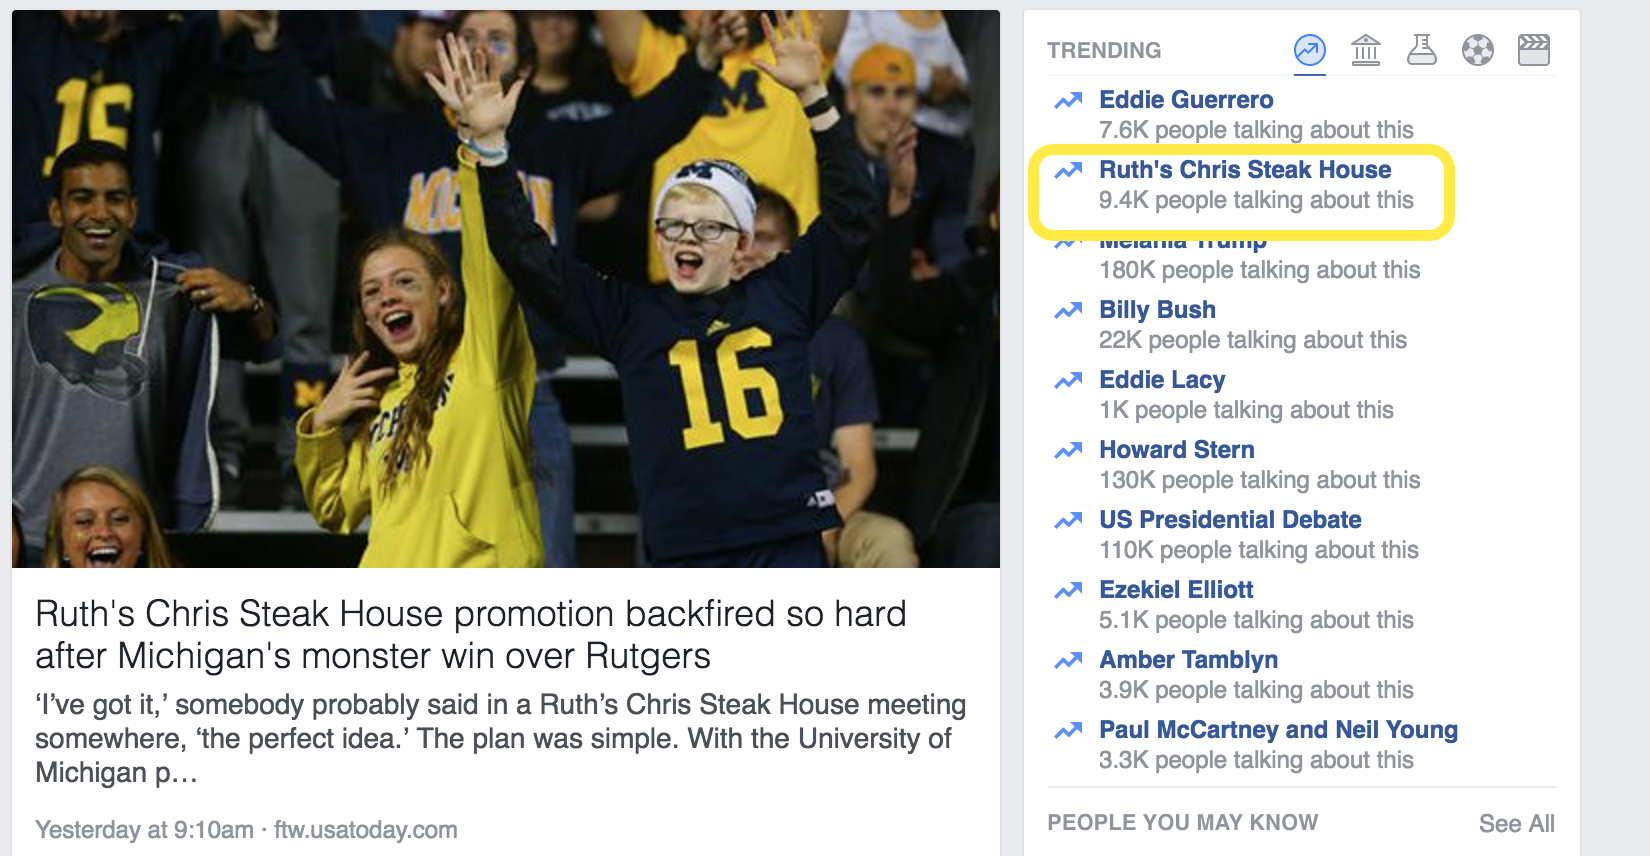 Ruth's Chris trending on Facebook after their social media promotion went wrong